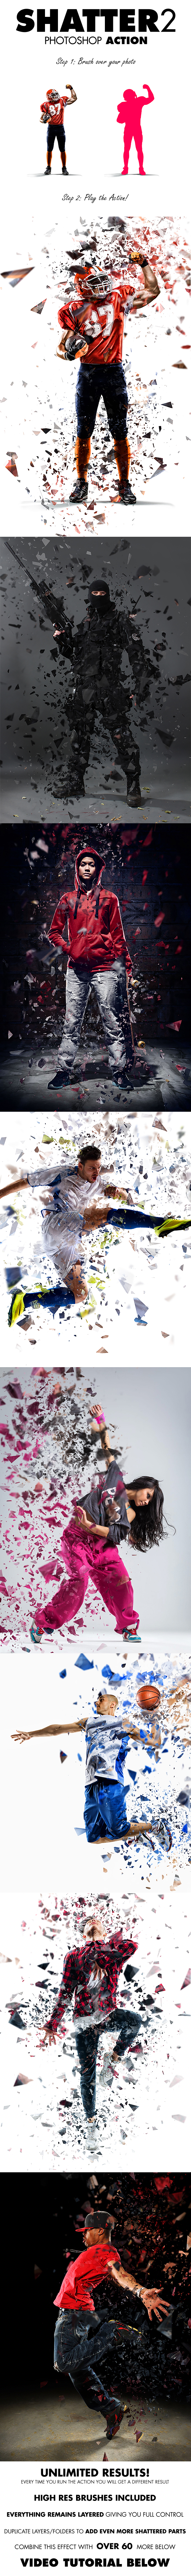 Graphicriver | Shatter2 Photoshop Action Free Download free download Graphicriver | Shatter2 Photoshop Action Free Download nulled Graphicriver | Shatter2 Photoshop Action Free Download